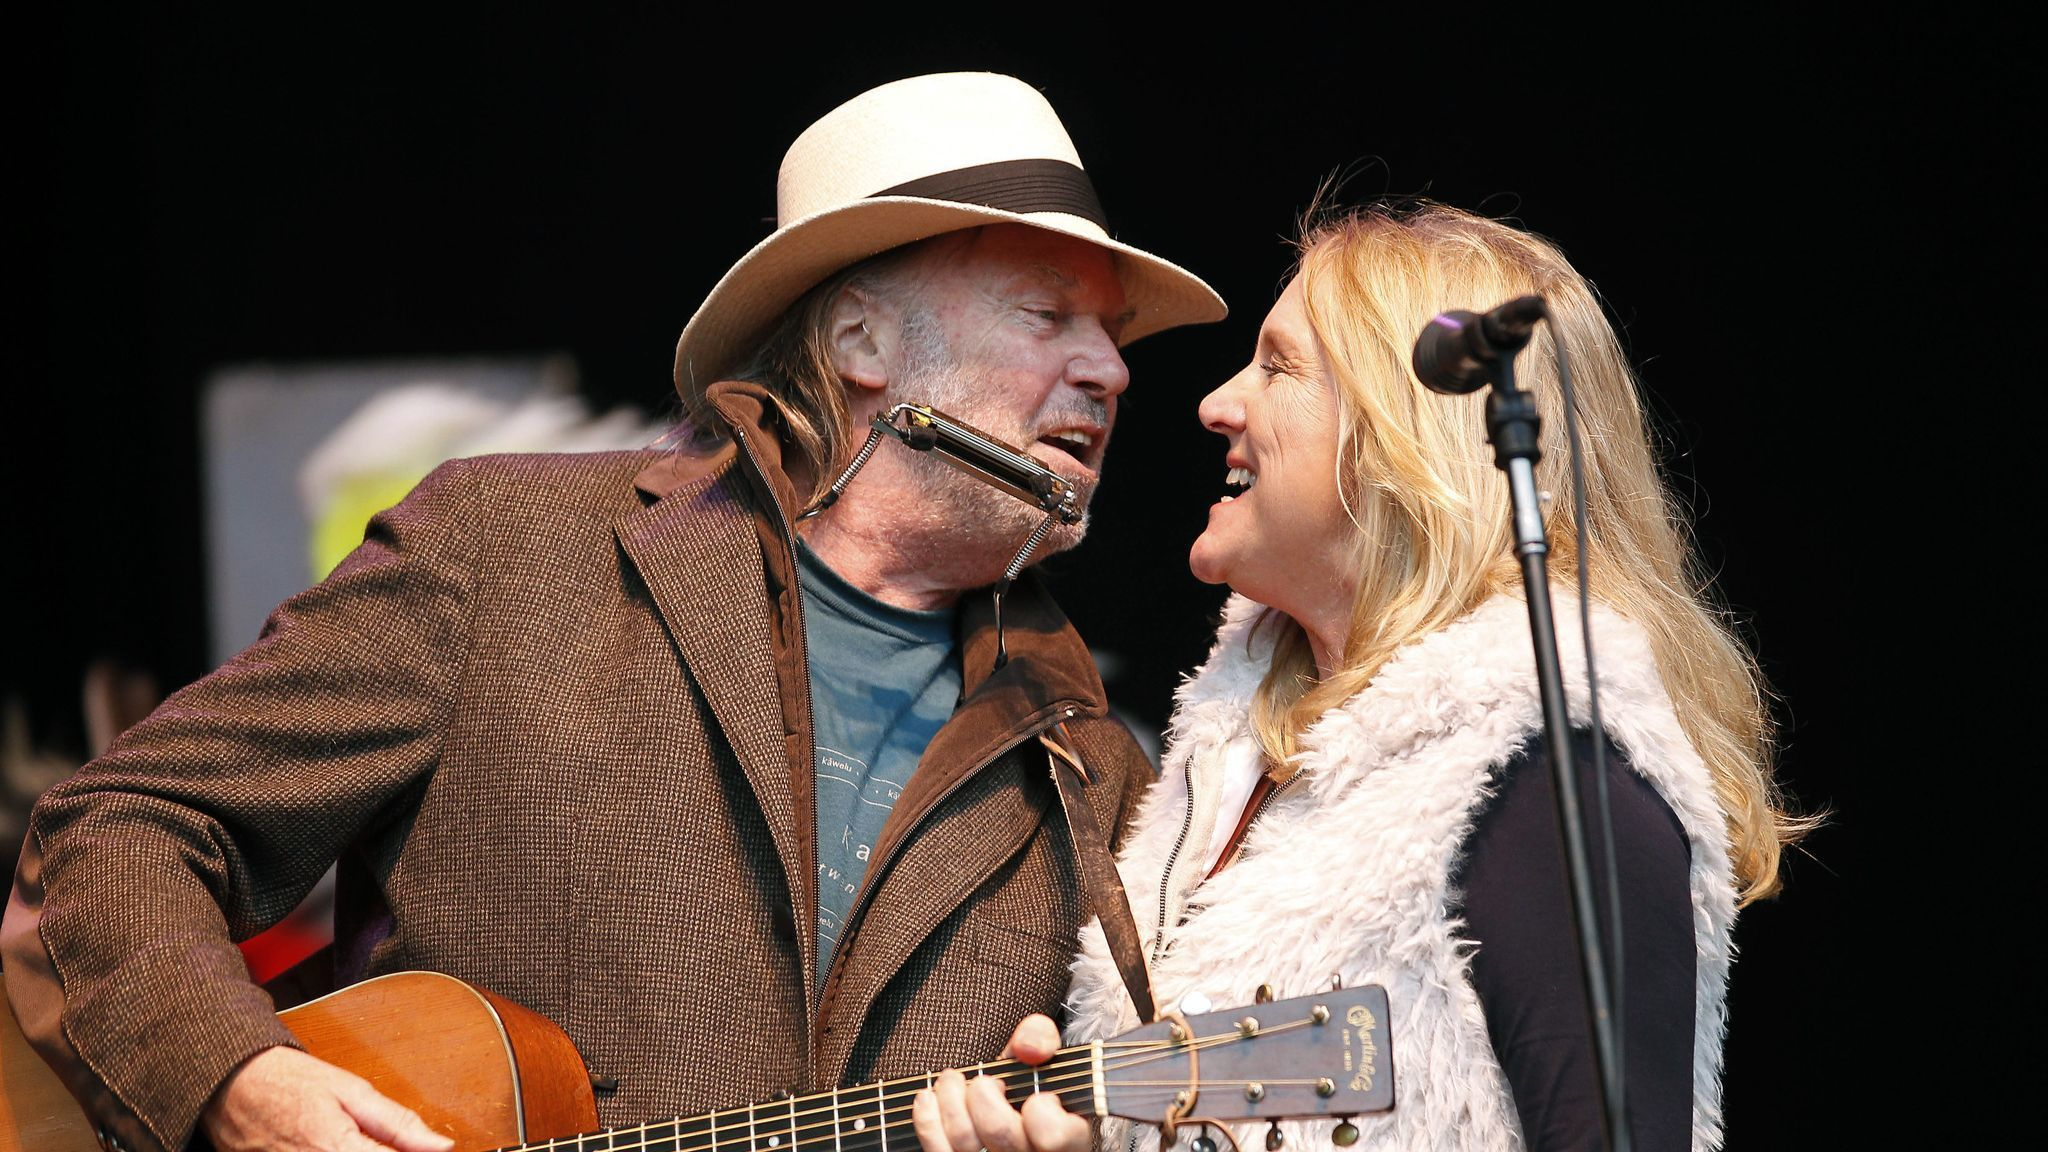 FILE - In this Oct. 24, 2010 file photo, Neil Young, left, and his wife Pegi Young perform during th